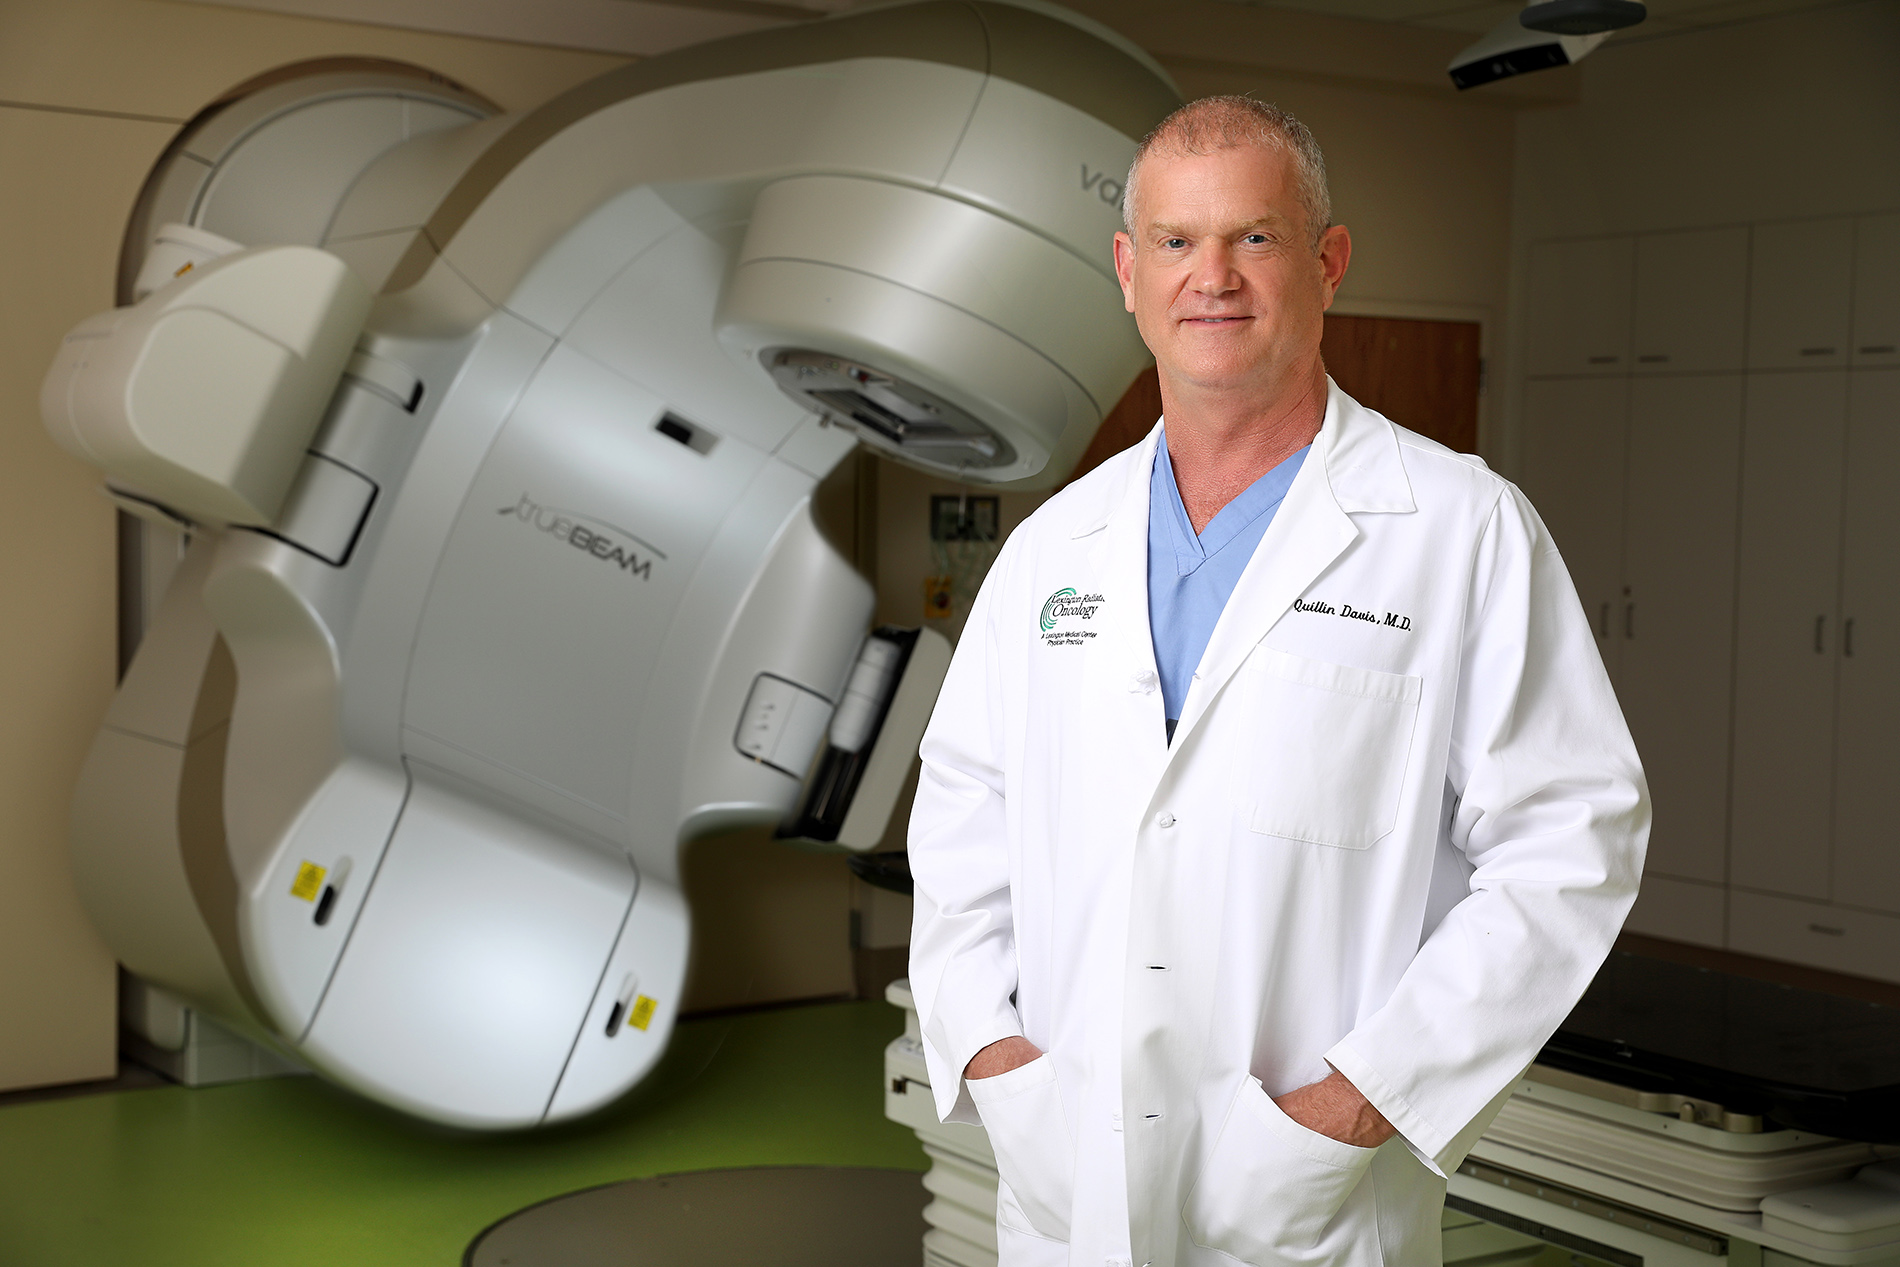 Dr. Davis standing in front in linear accelerator